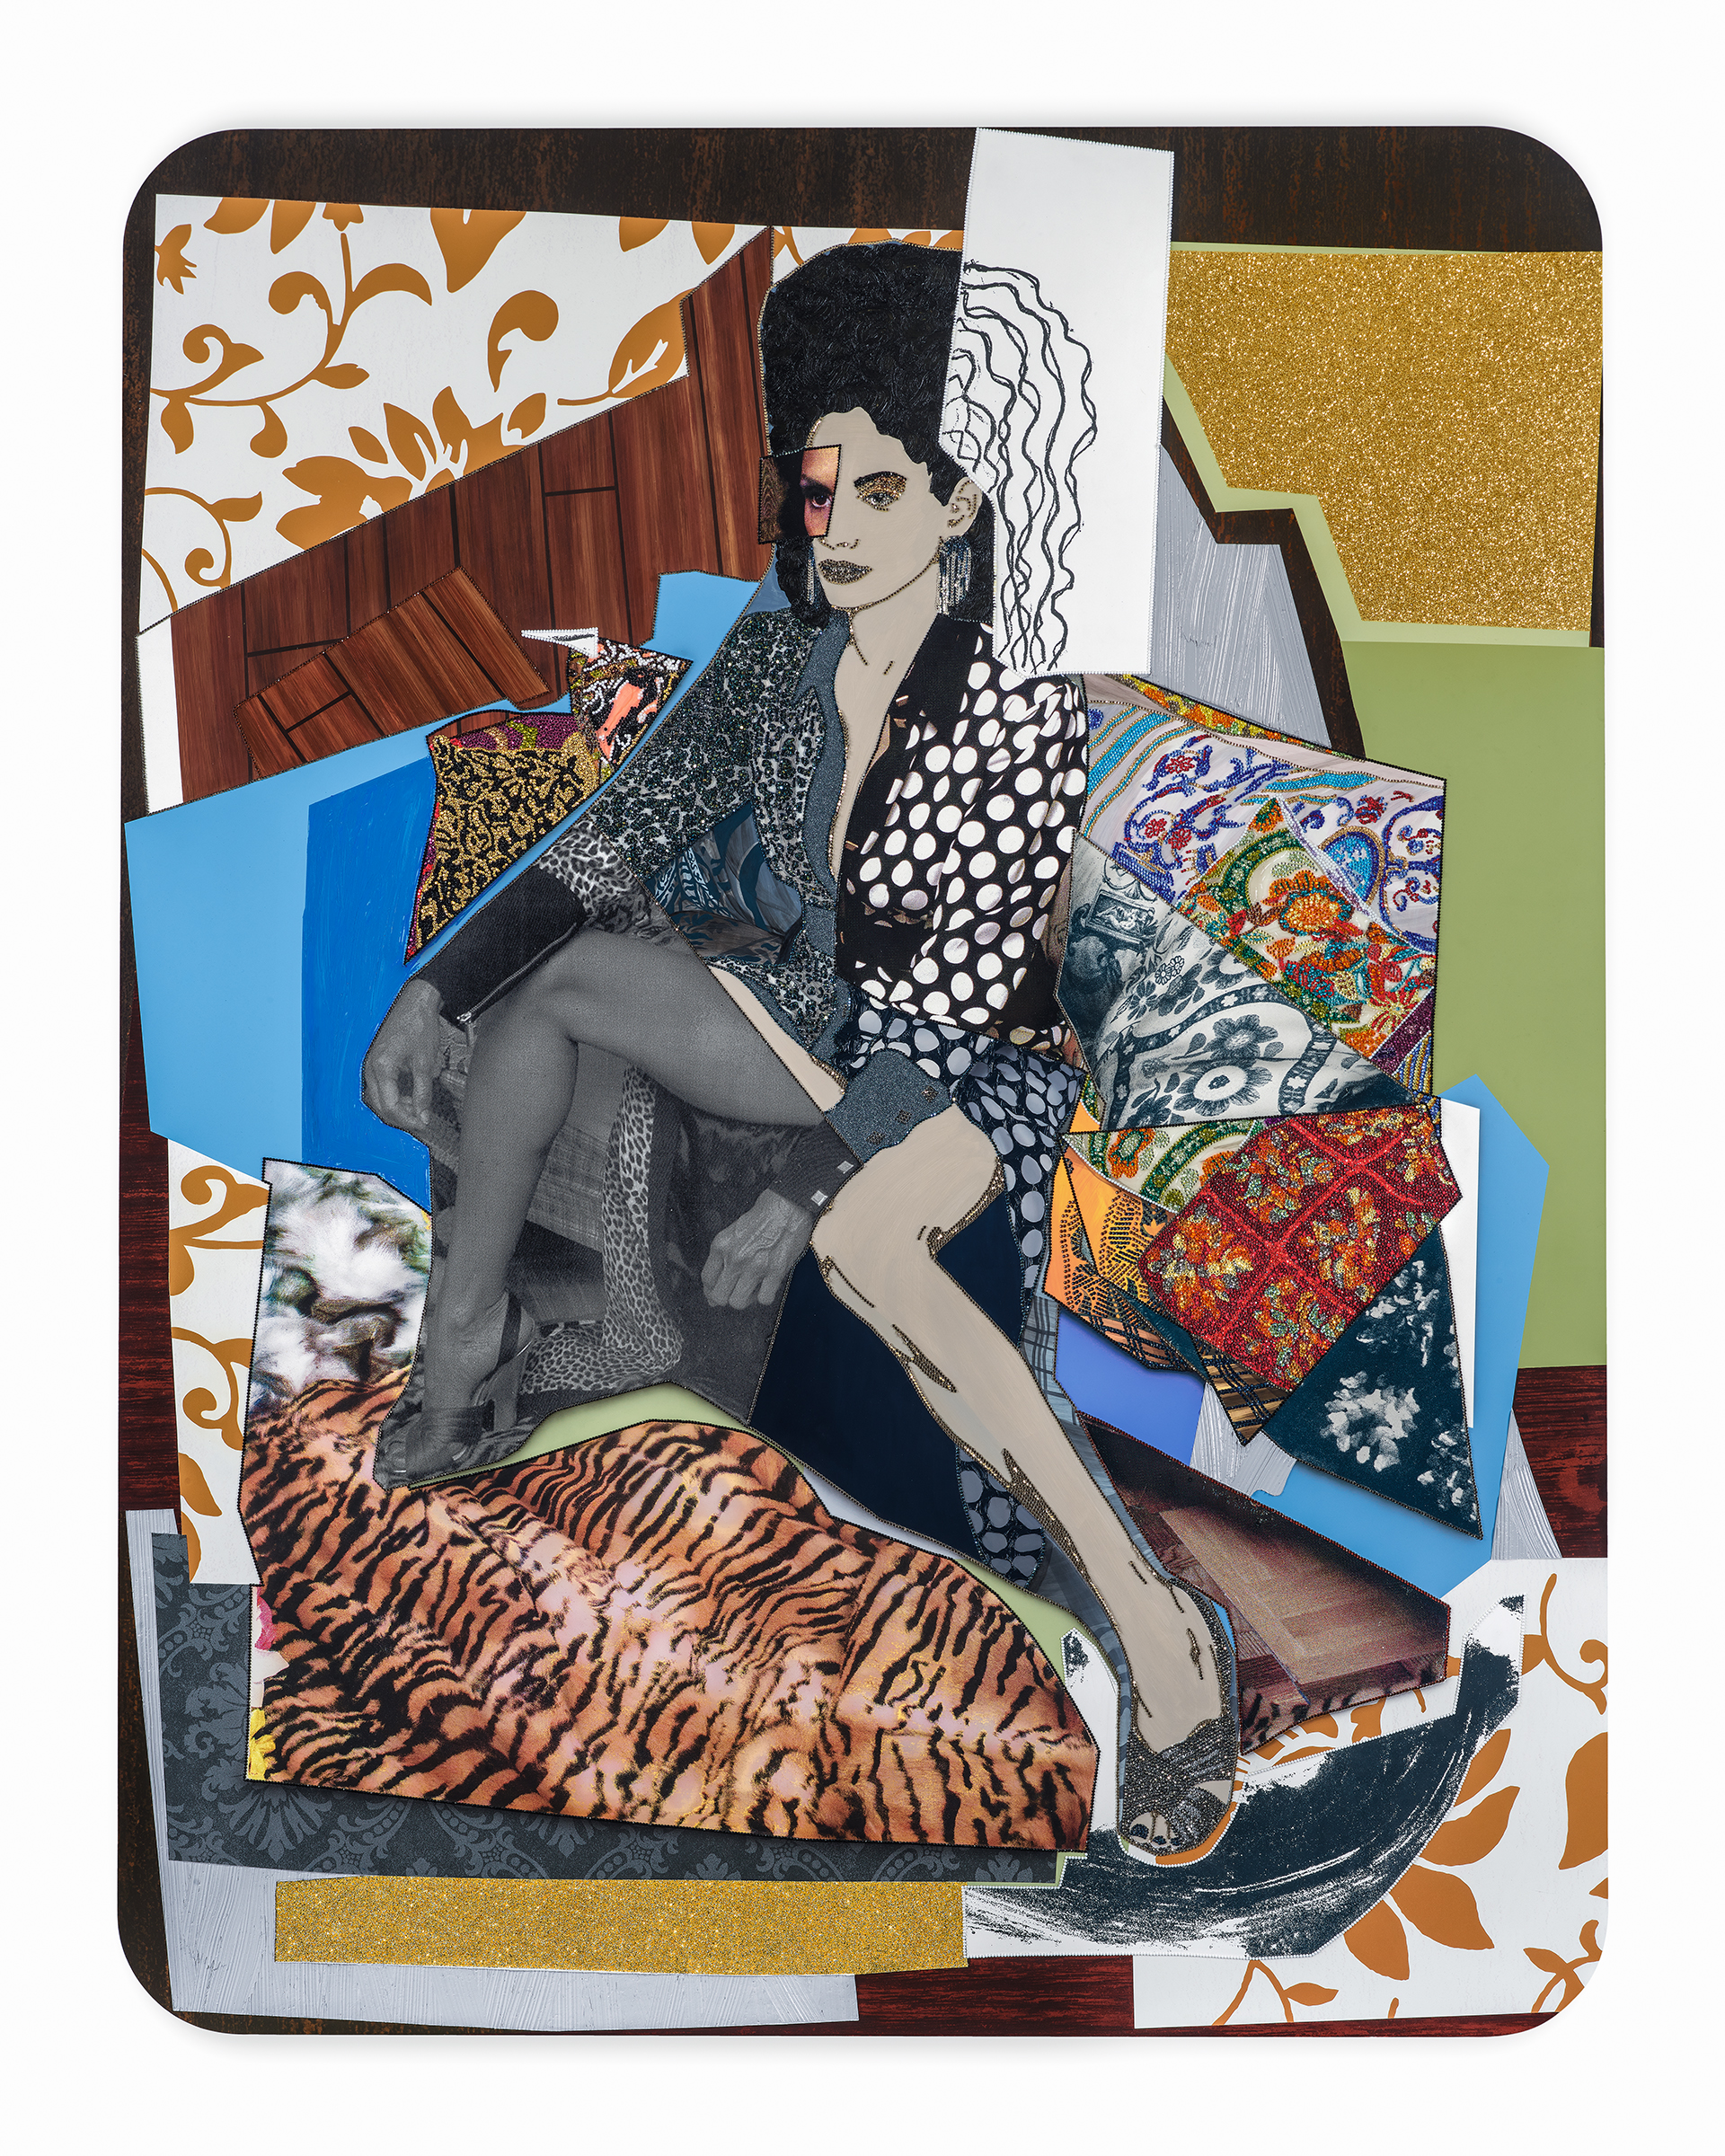 Racquel: Come to Me, 2017, Mickalene Thomas, rhinestones, acrylic, oil, glitter, and oil stick on wood panel, 108 x 84 x 2 in., Courtesy of the artist and Lehmann Maupin, New York and Hong Kong, © Mickalene Thomas.